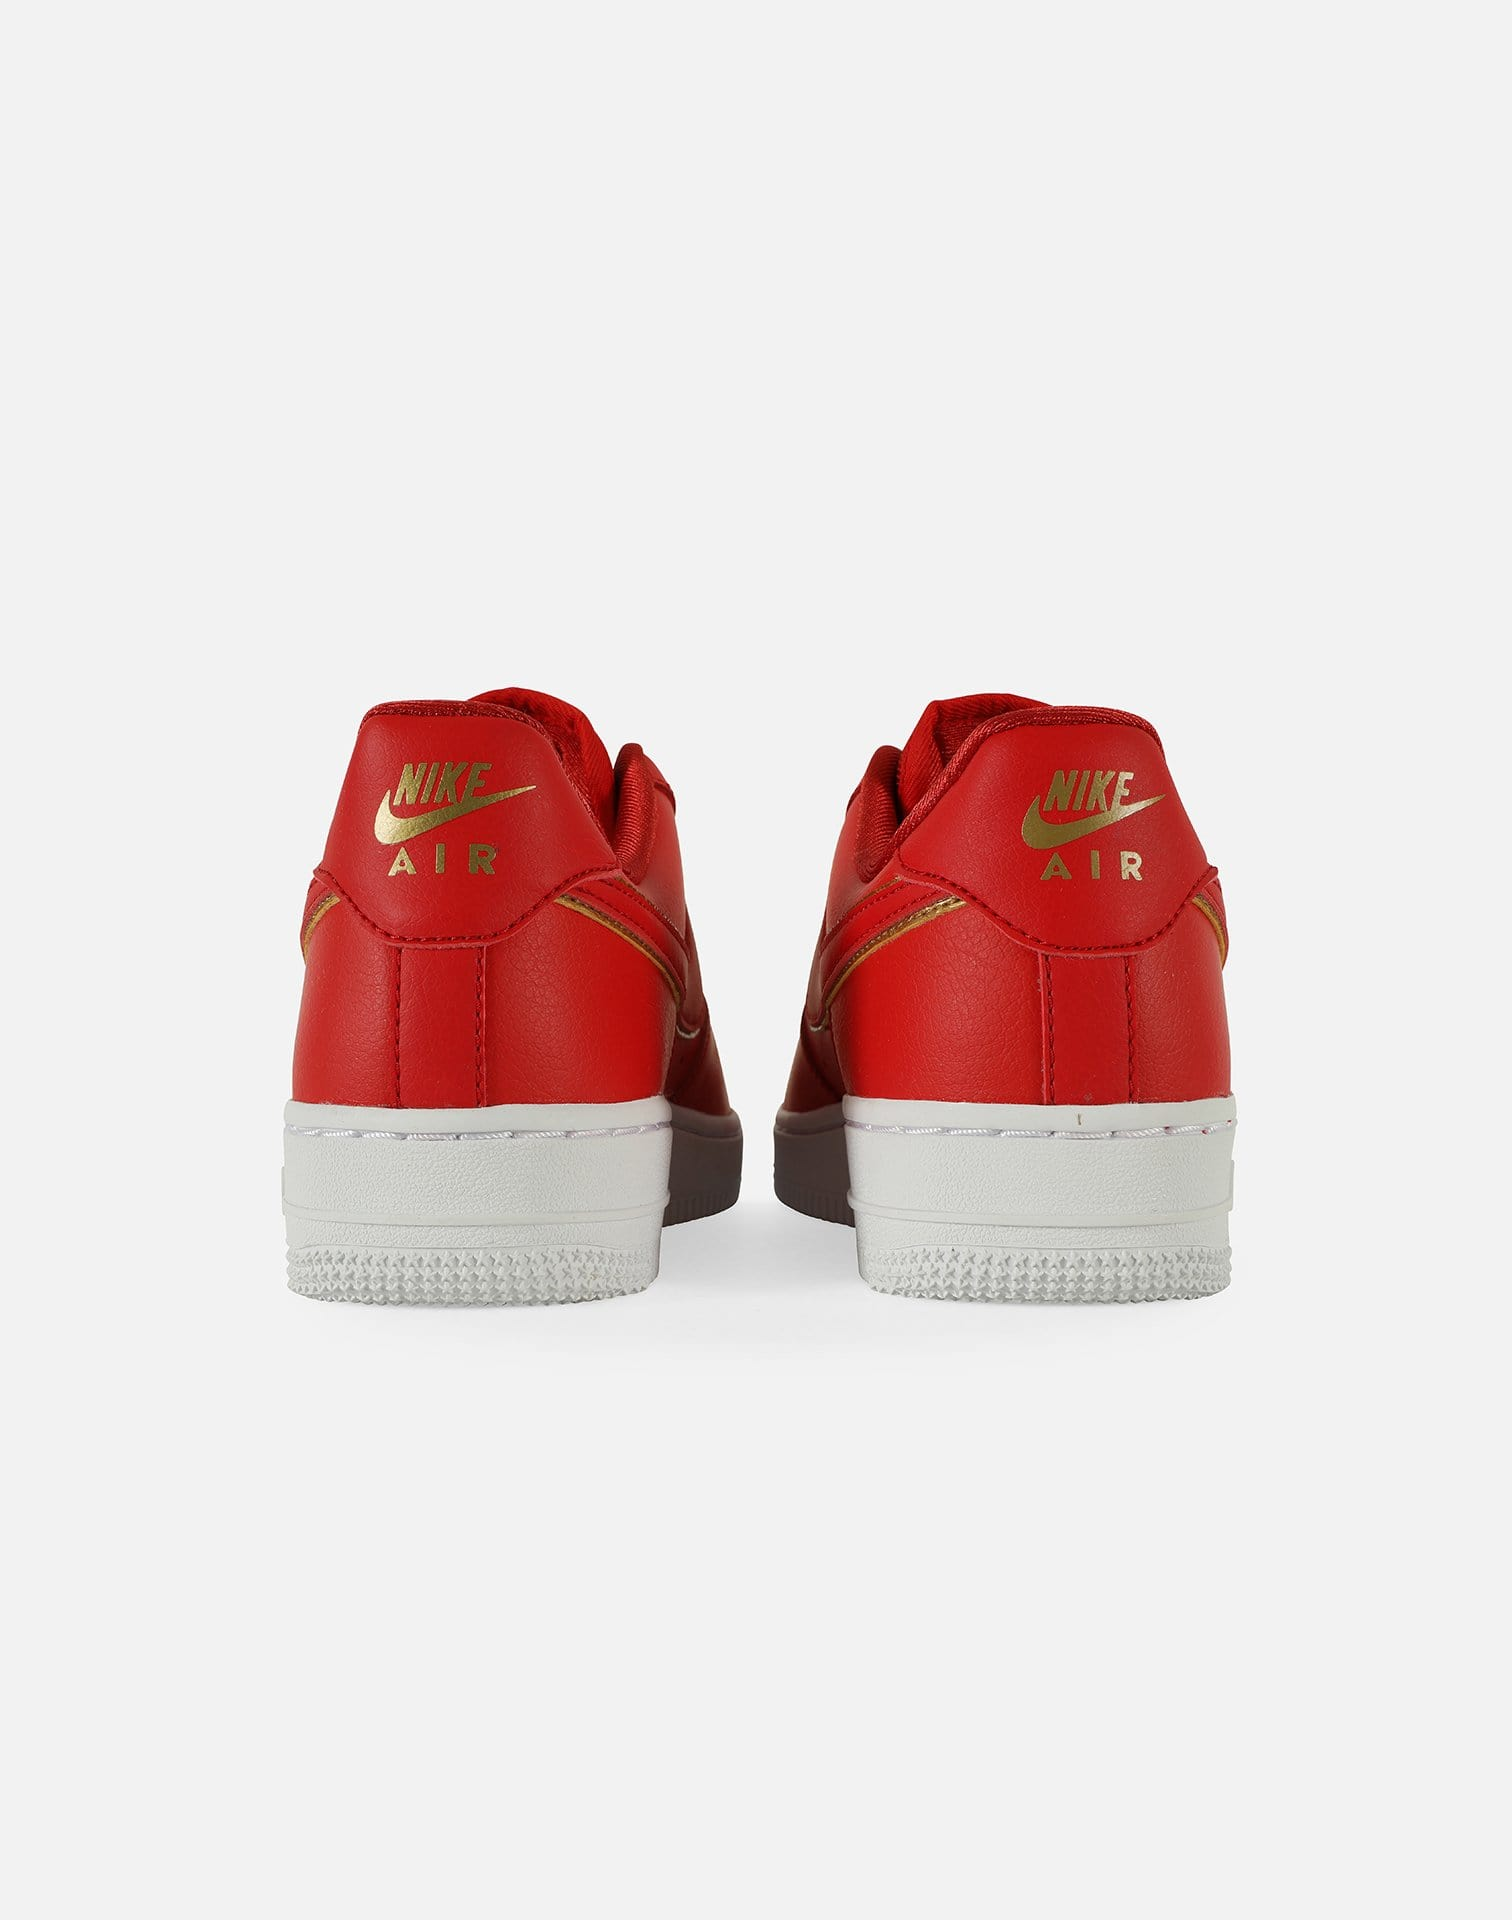 WMNS AIR FORCE 1 '07 ESSENTIAL